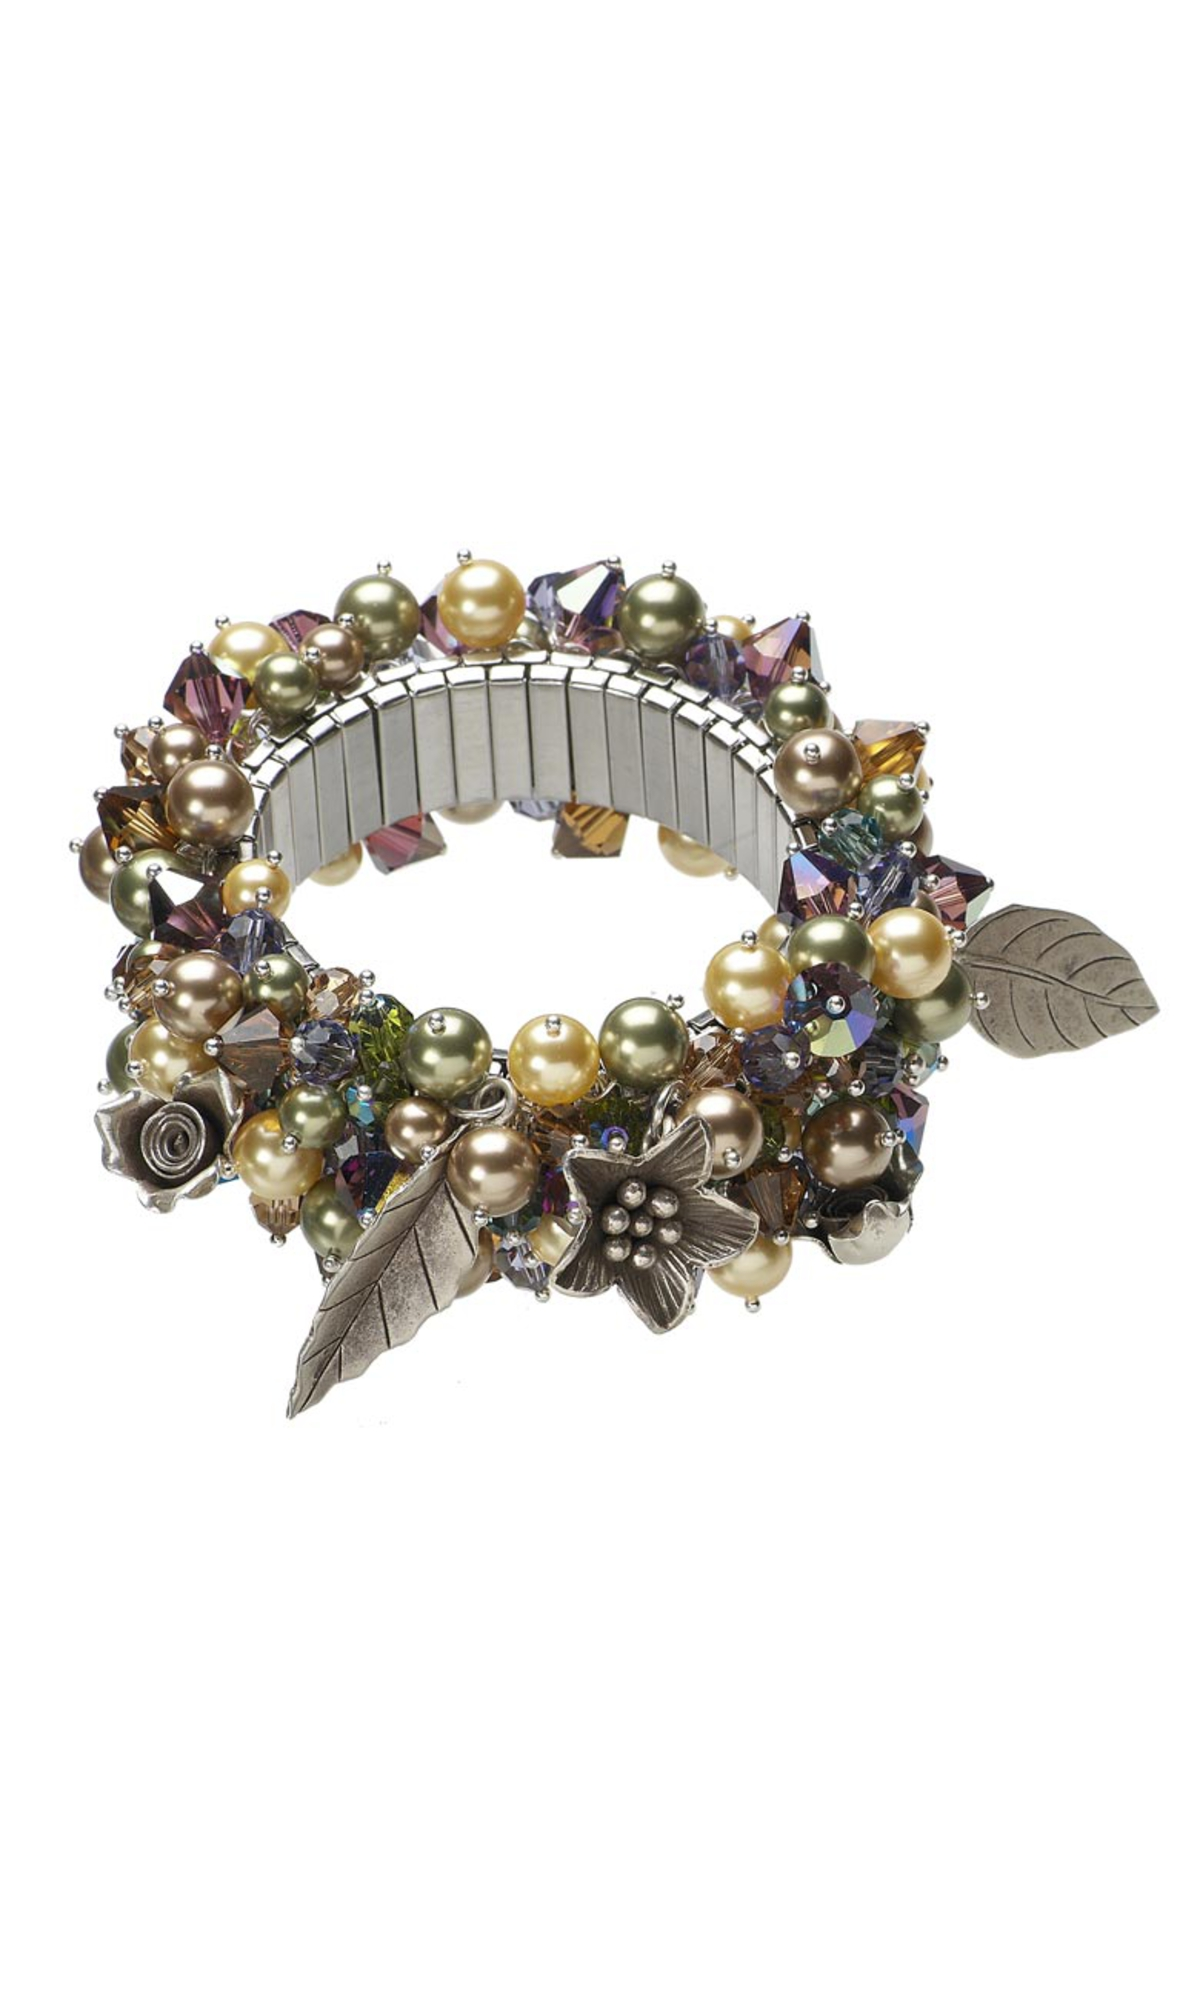 Jewelry Design ChaCha Bracelet with Swarovski Crystal Pearls and